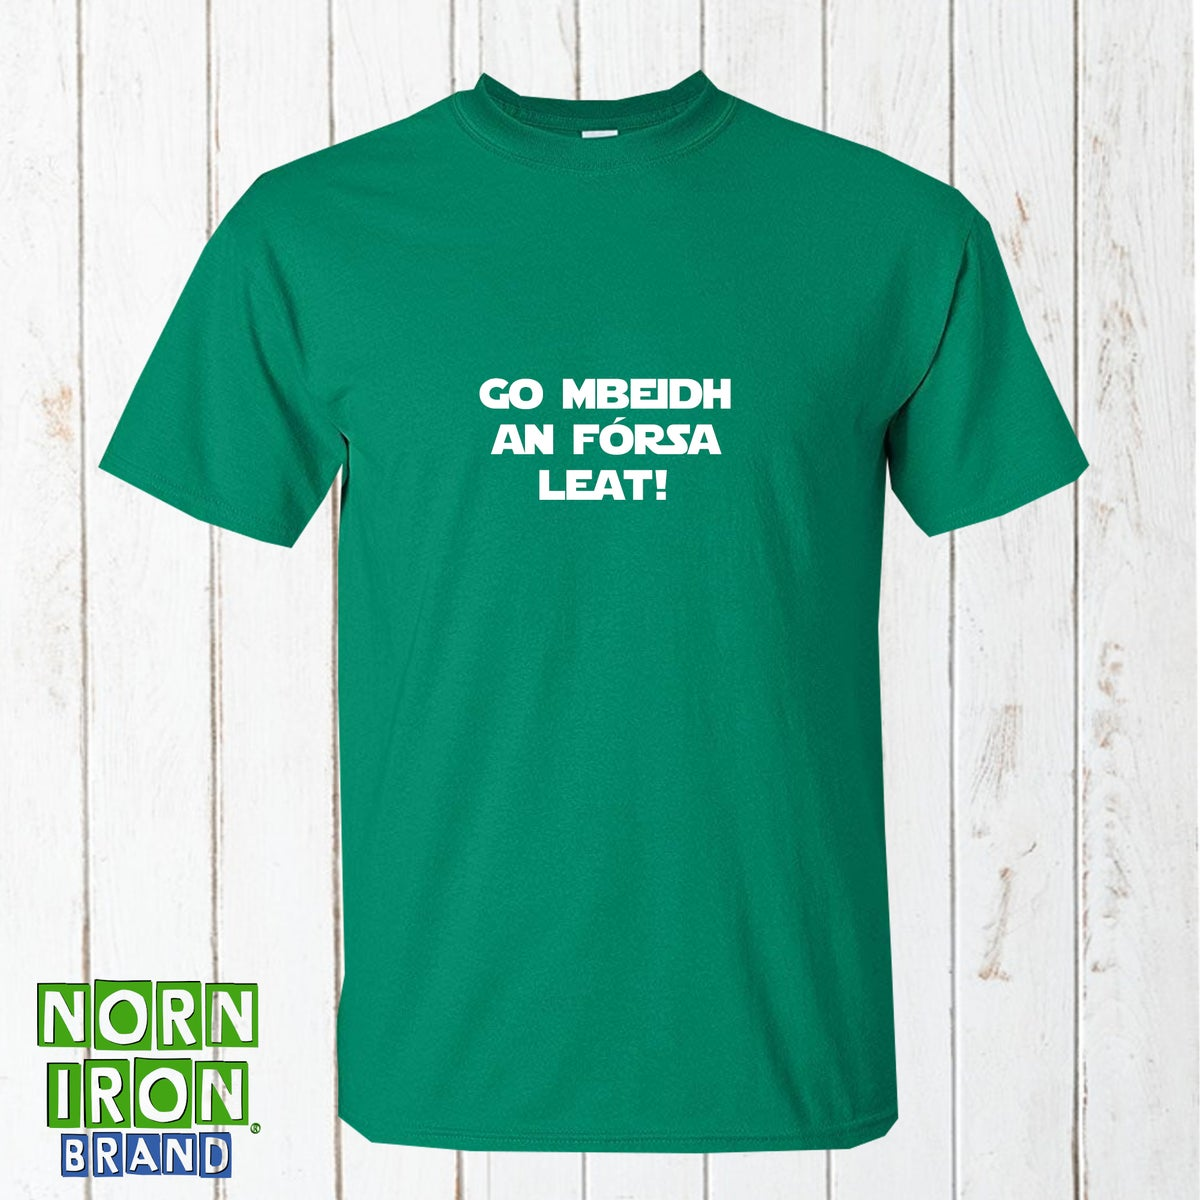 Go mbeidh an fórsa leat! (May The Force Be With You) T-Shirt